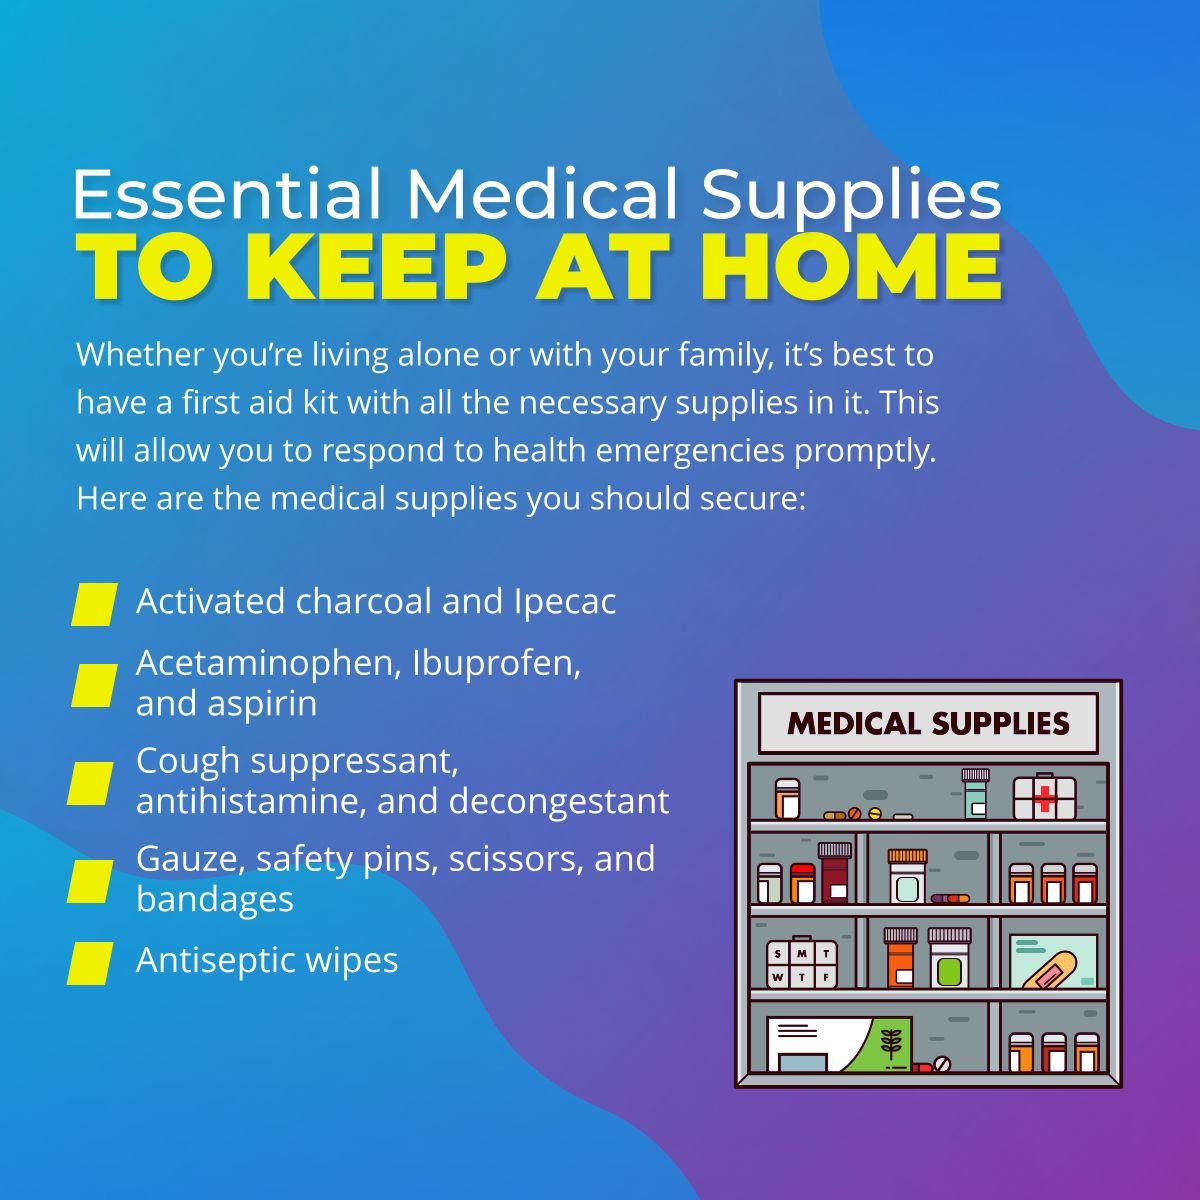 Home (With images) Medical supplies, Medical, Pharmacy